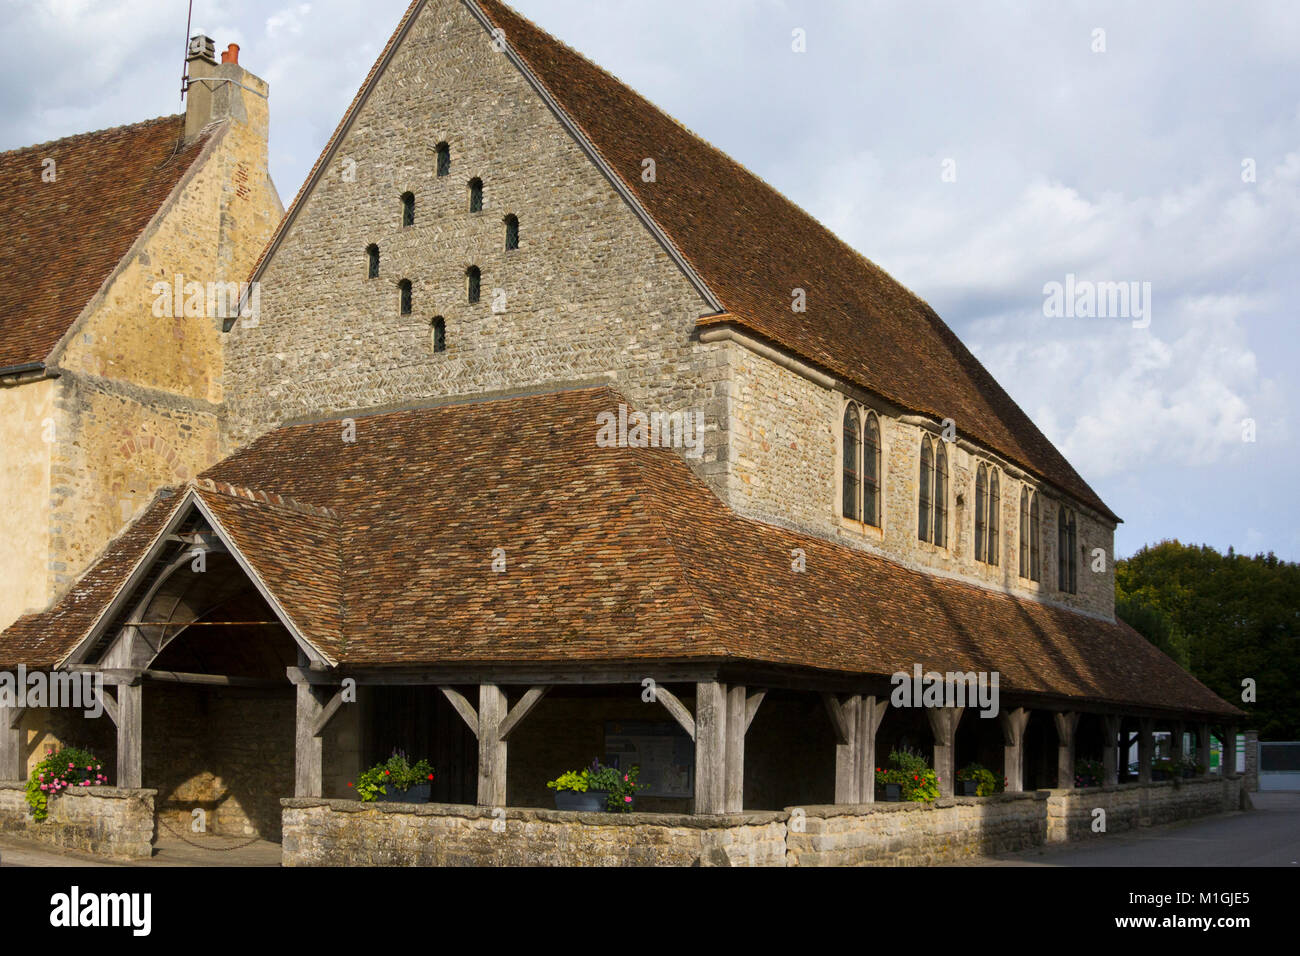 Historic architecture in Sees, Orne, Normandy, France - Stock Image